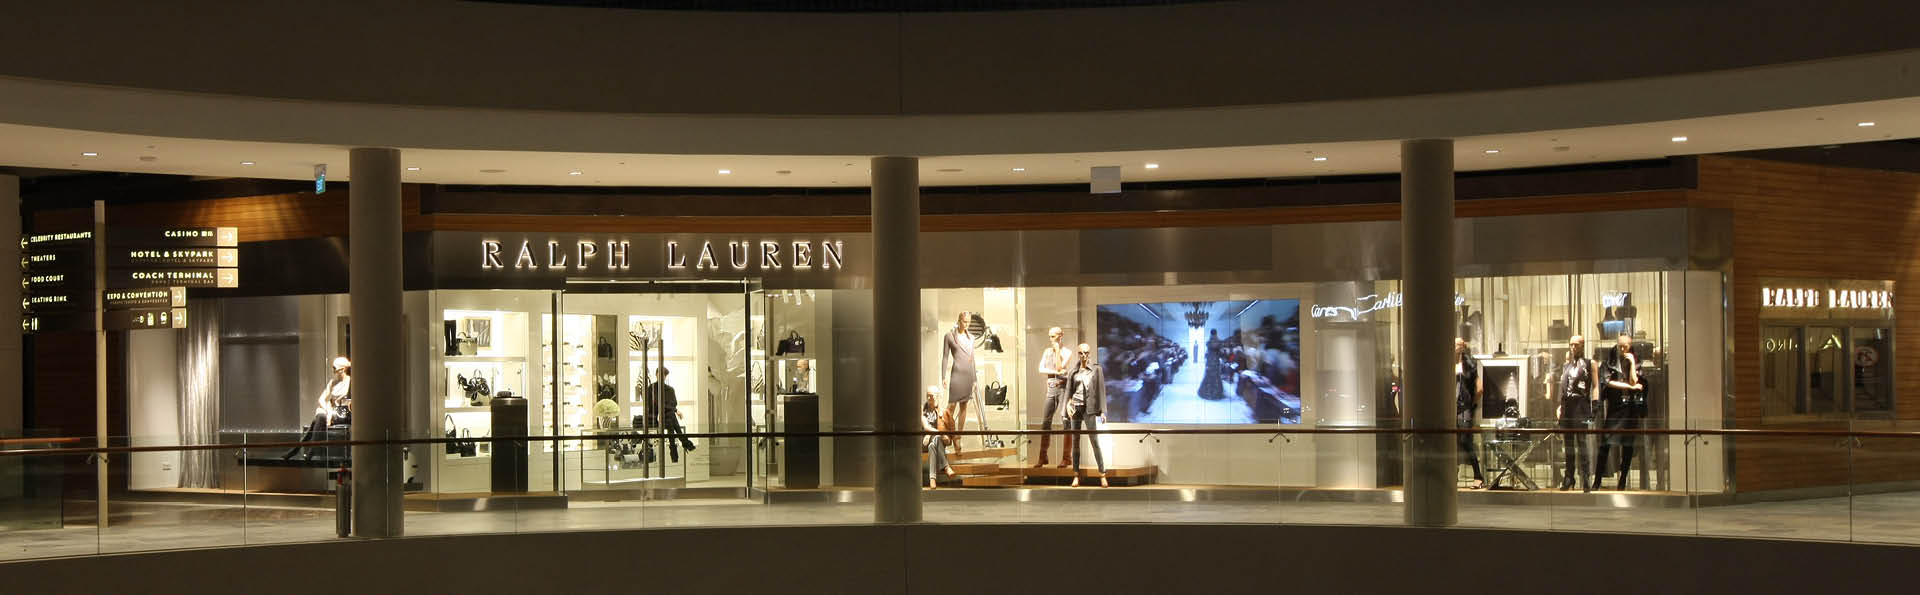 Ralph Lauren - Women and Men's Fashion in Singapore